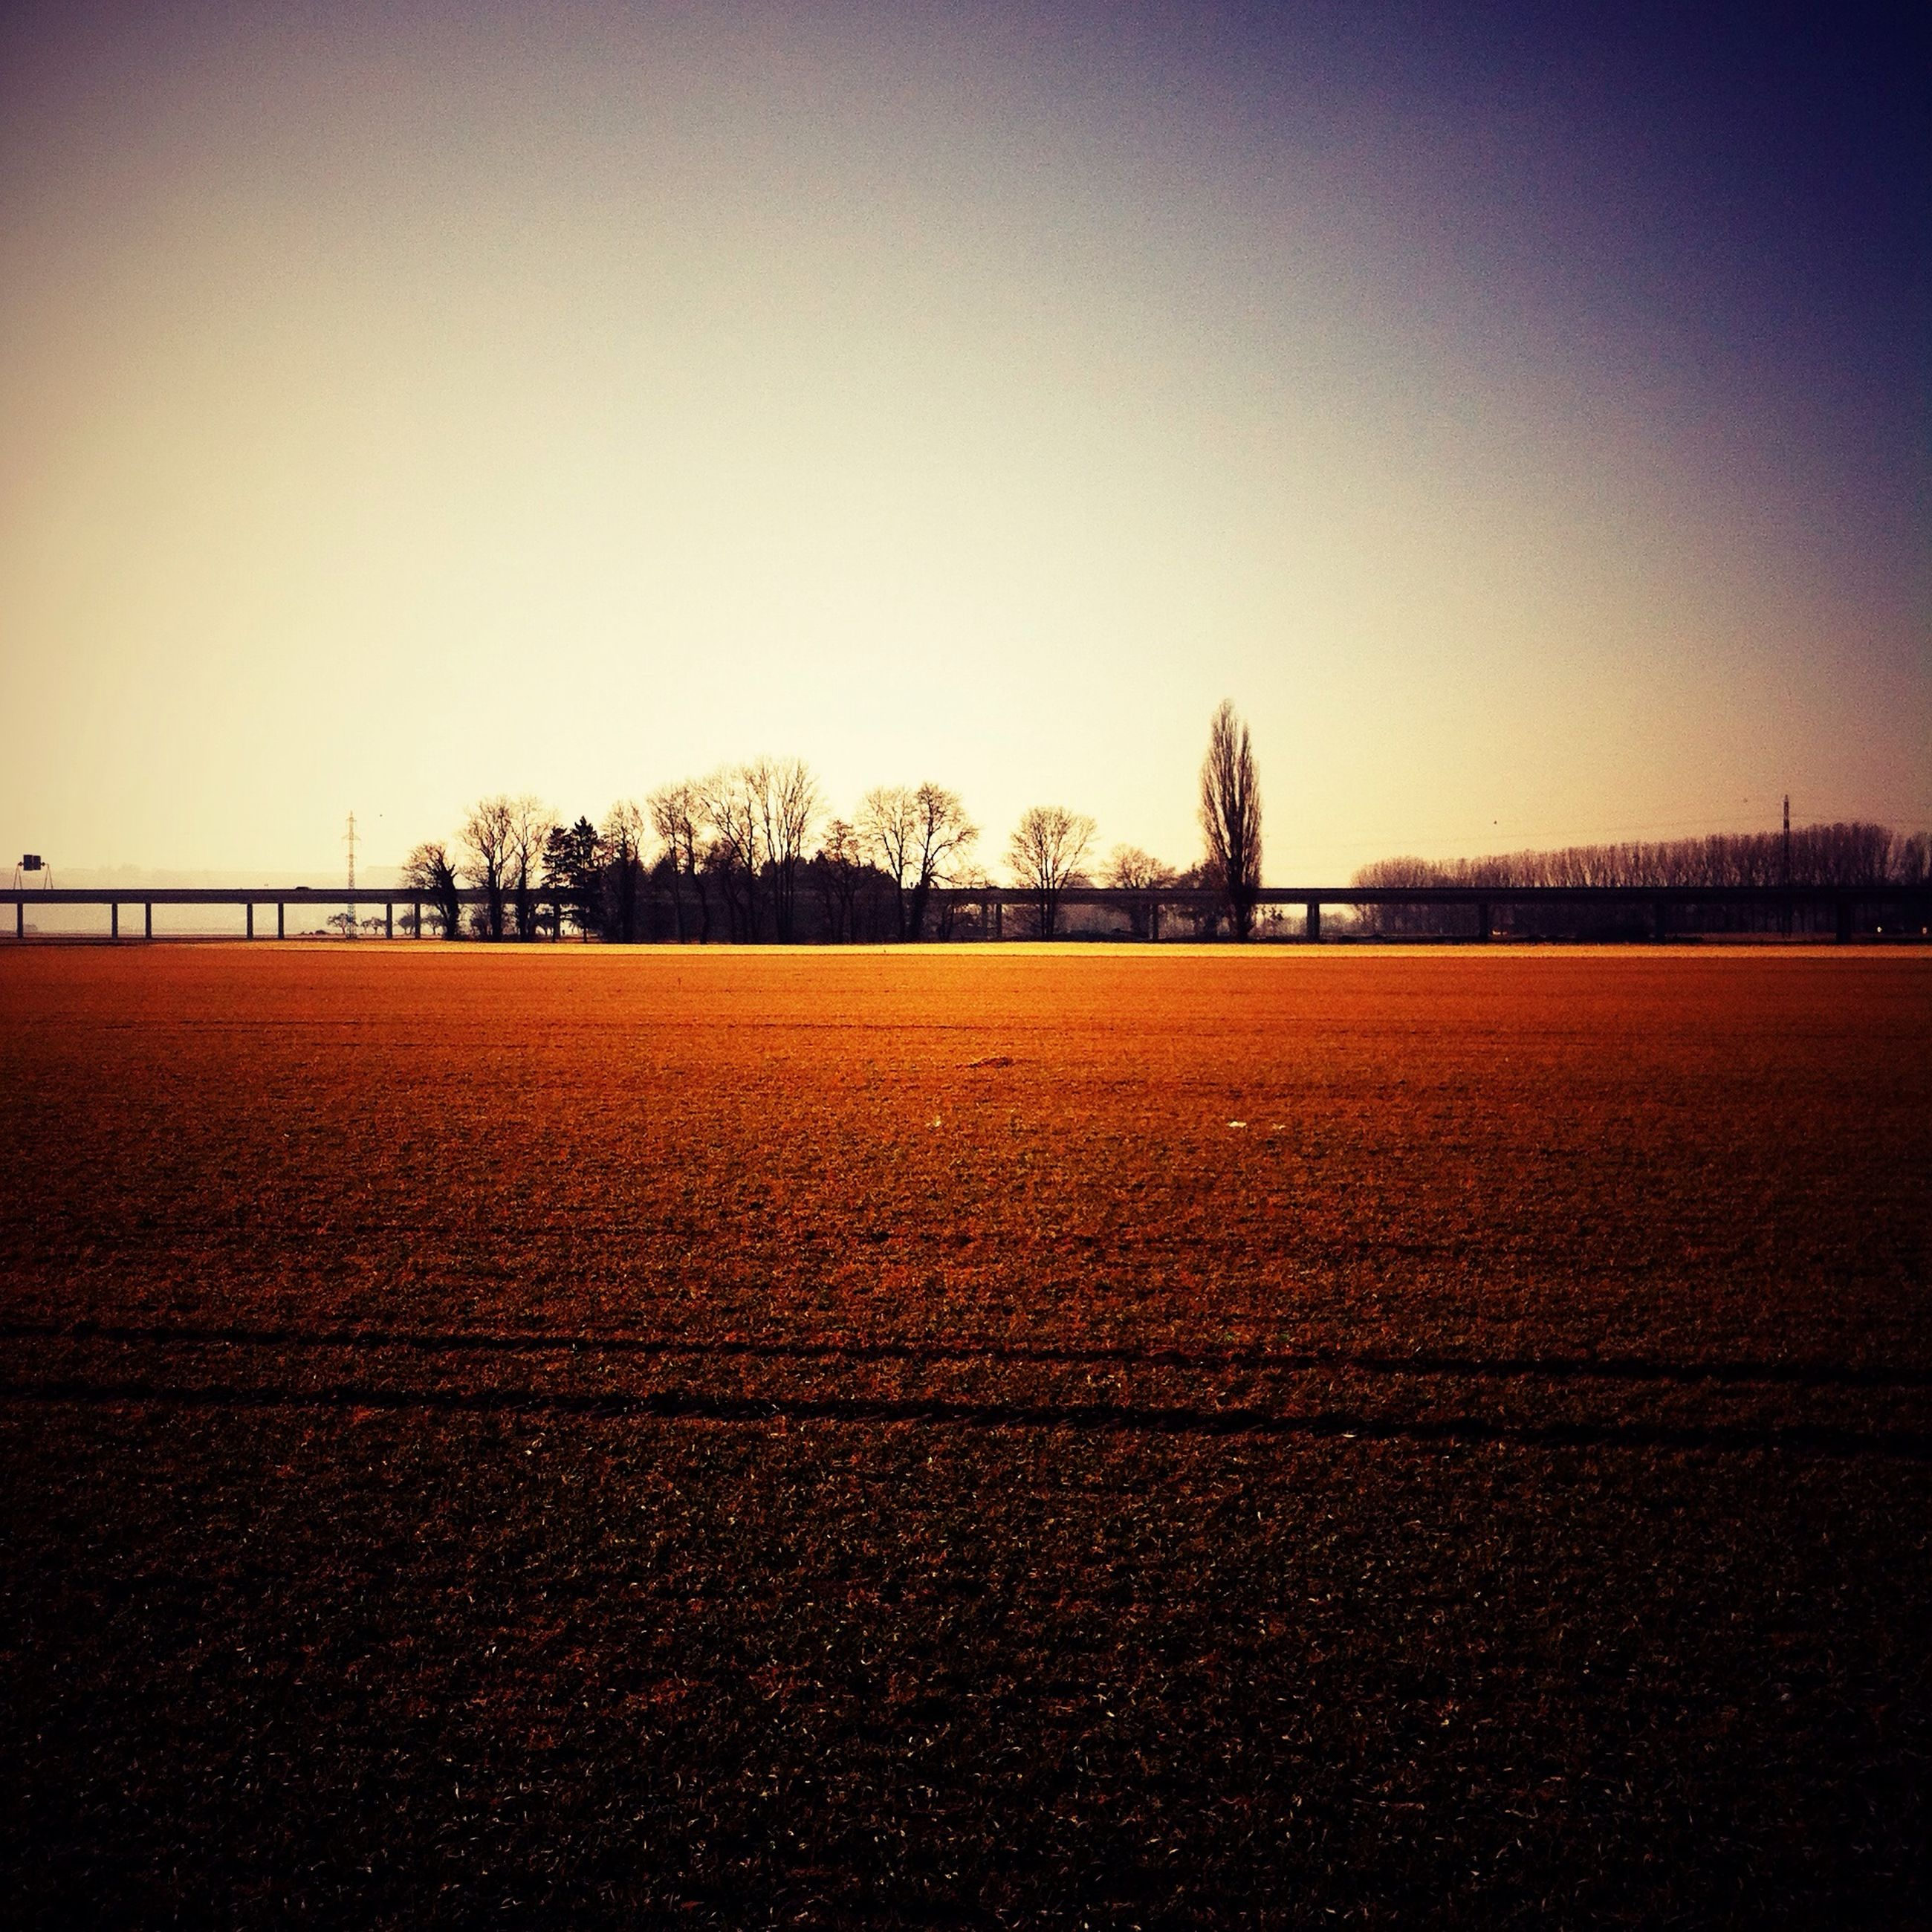 clear sky, copy space, landscape, tranquil scene, tranquility, field, tree, scenics, nature, beauty in nature, sunset, rural scene, outdoors, no people, agriculture, remote, horizon over land, non-urban scene, idyllic, road